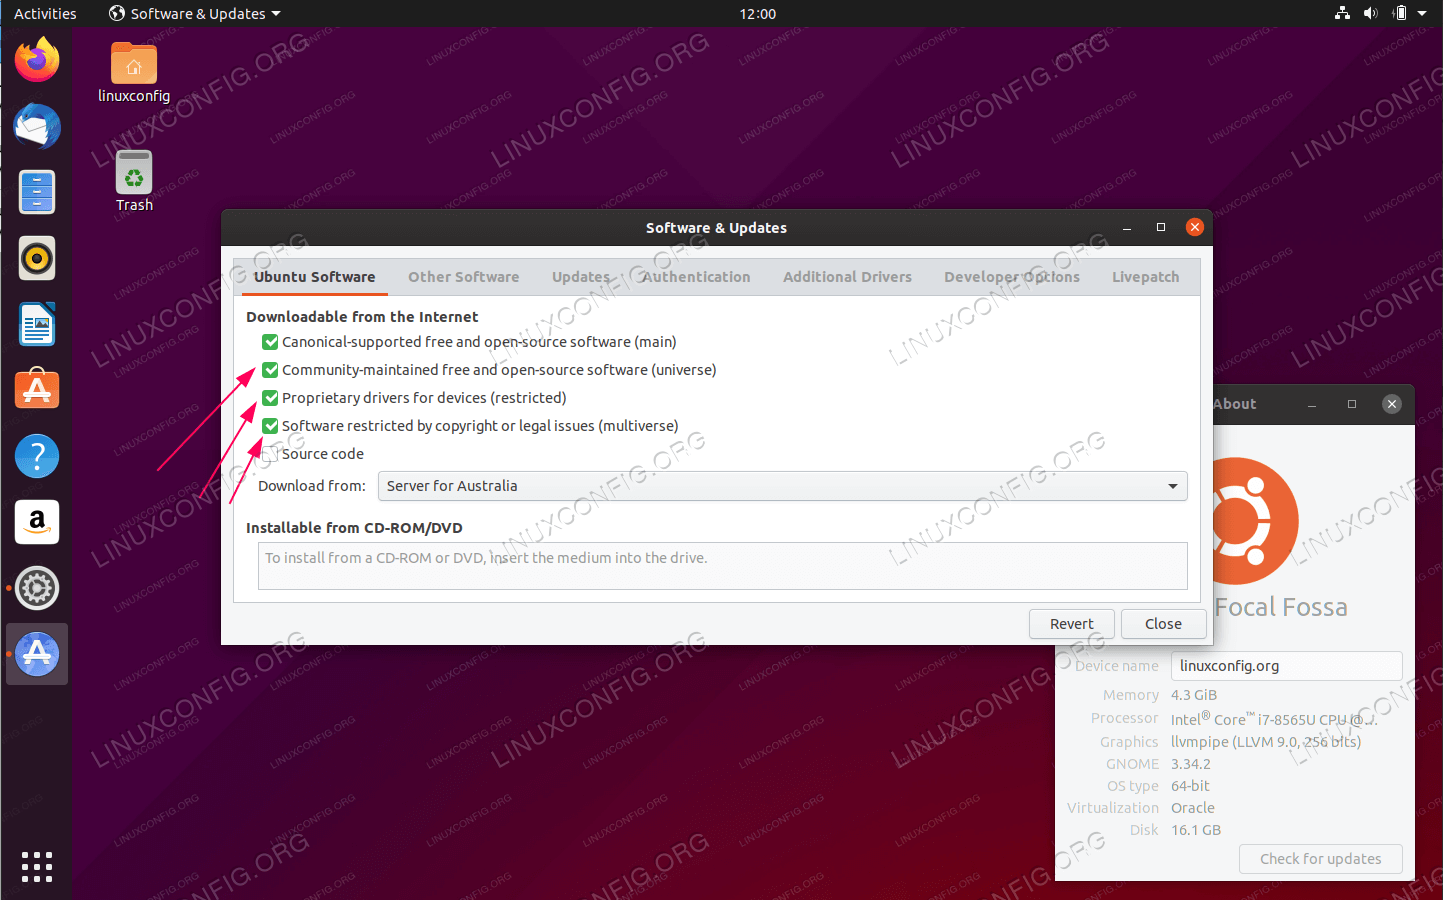 Enabled  Universe,Multiverse and Restricted repository on Ubuntu 20.04 LTS Focal Fossa